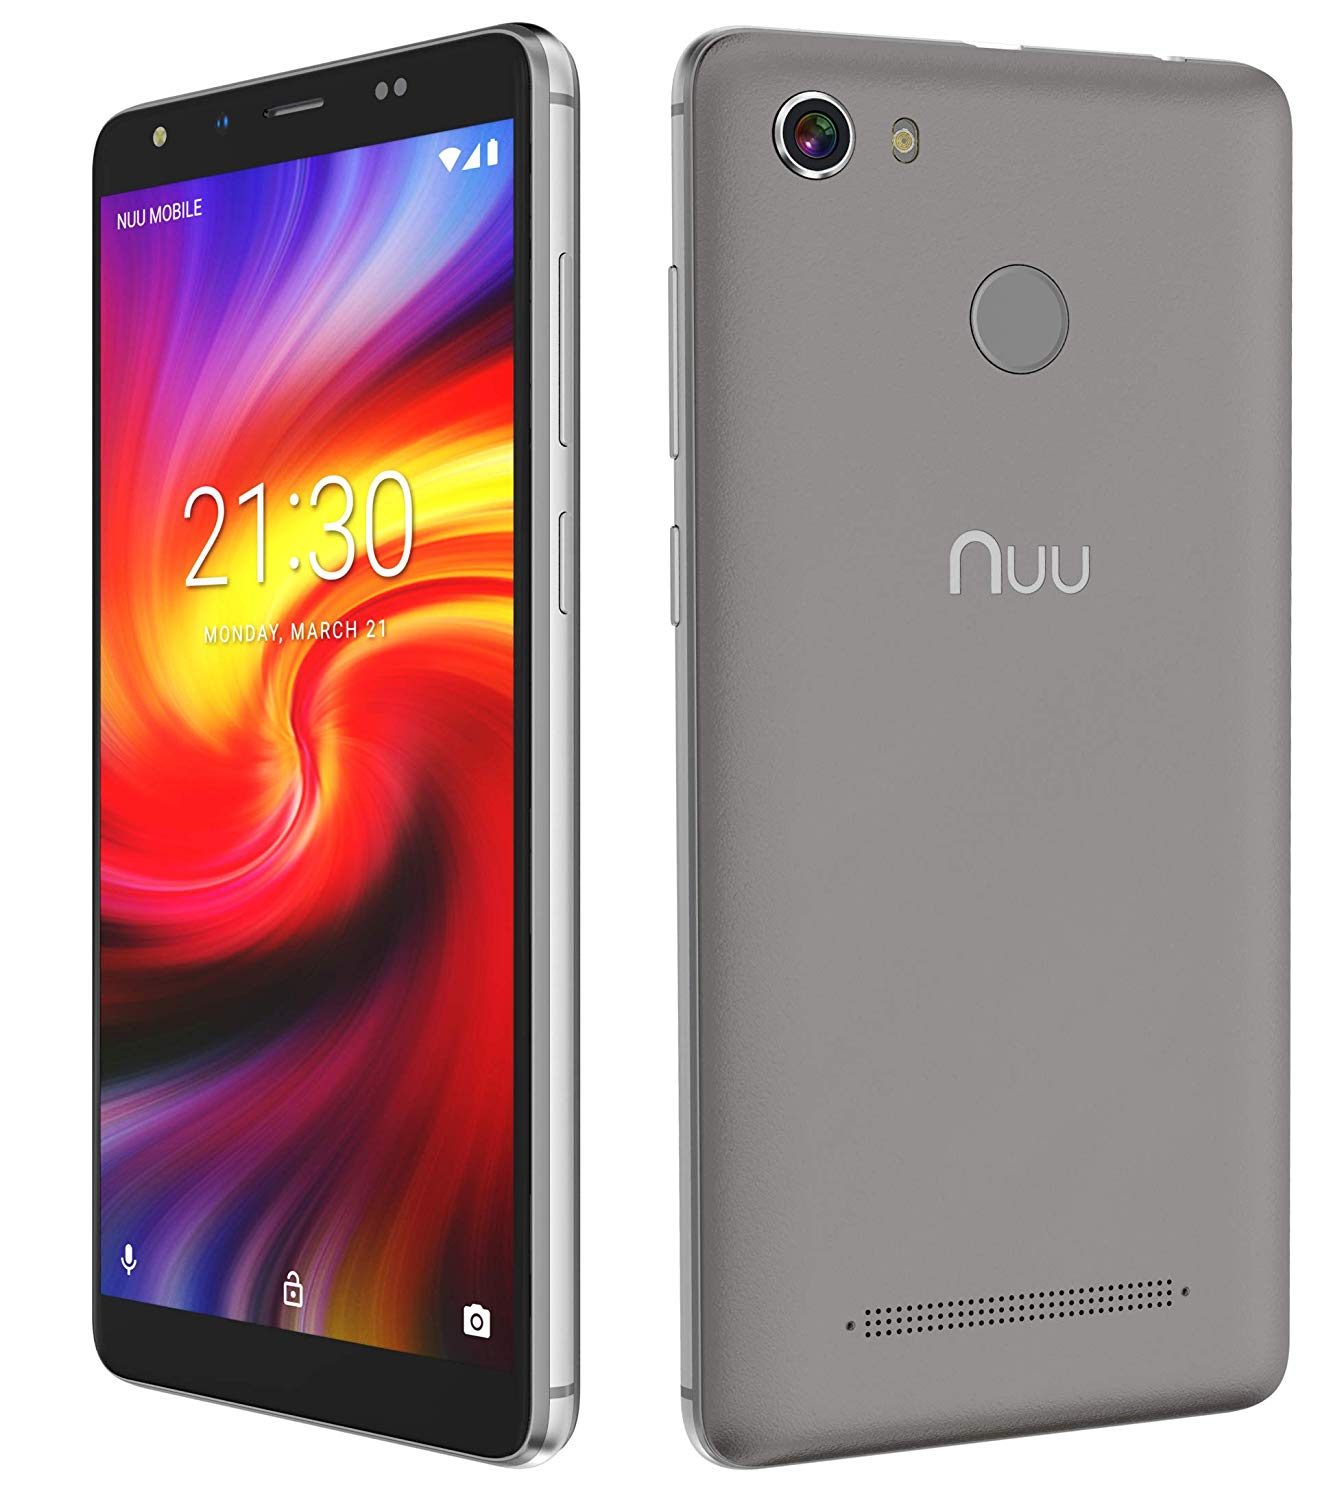 How To Root Nuu G1 and Install TWRP Recovery